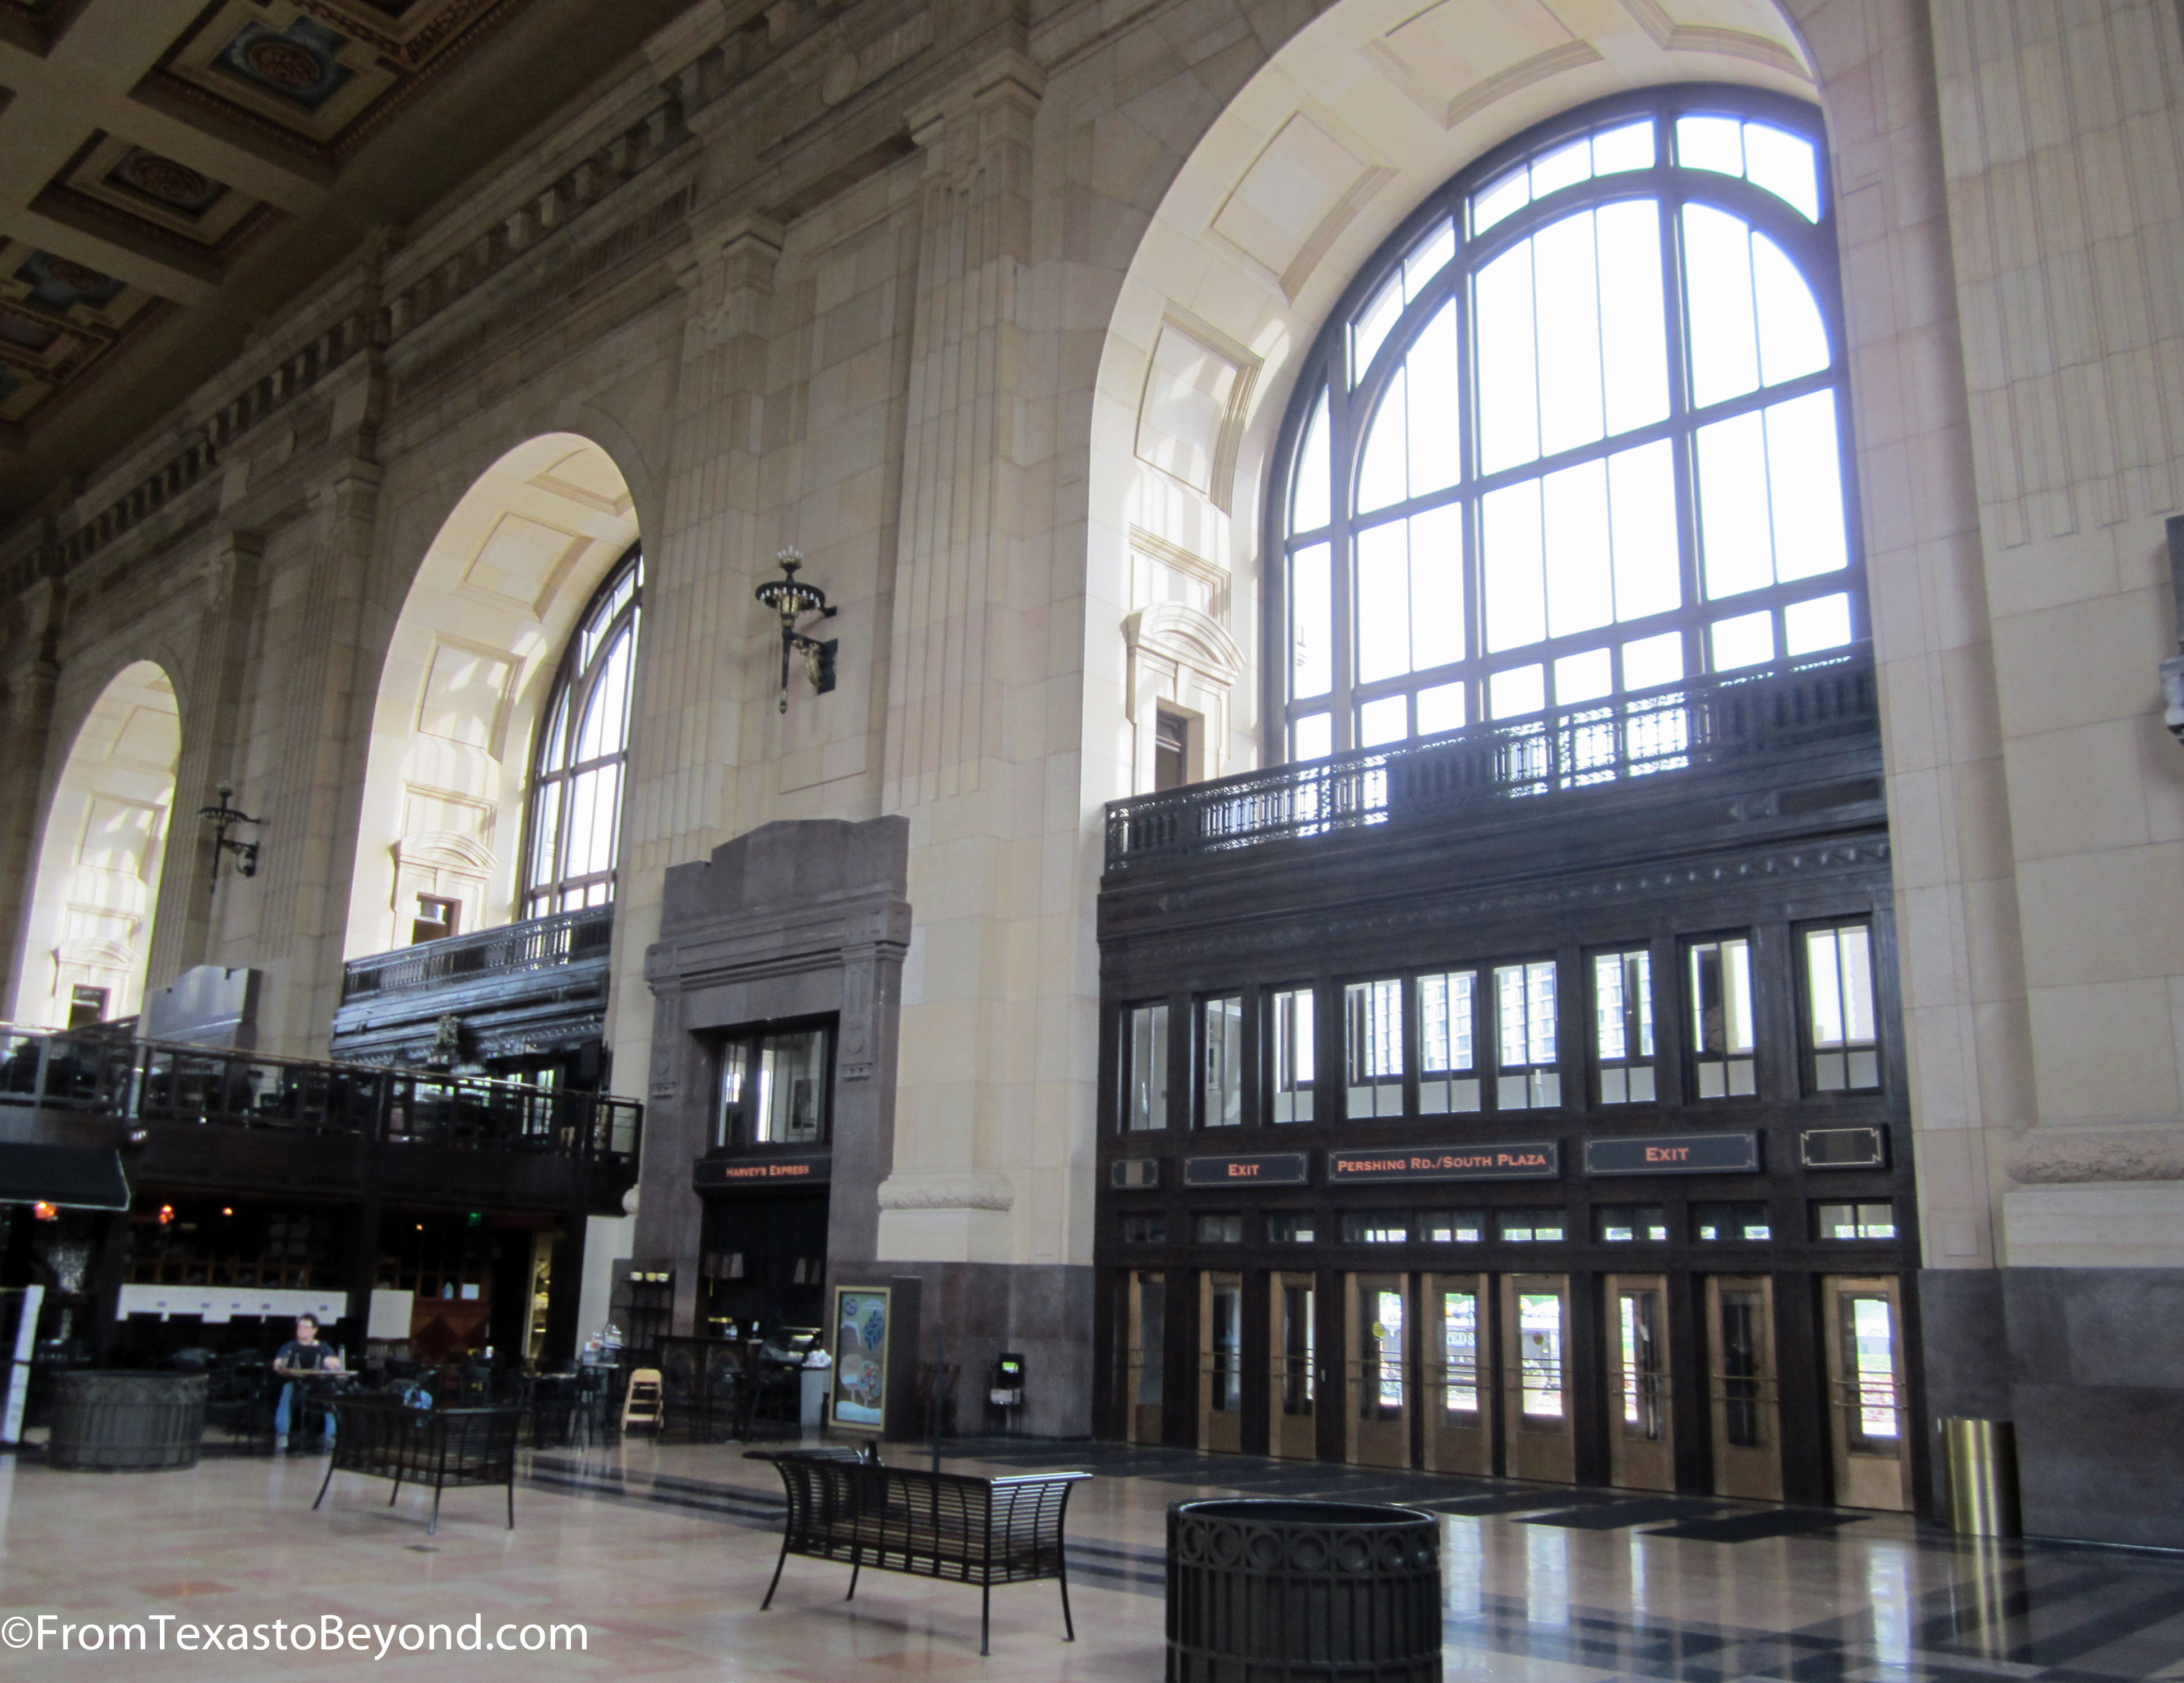 Kansas City Union Station - From Texas to Beyond